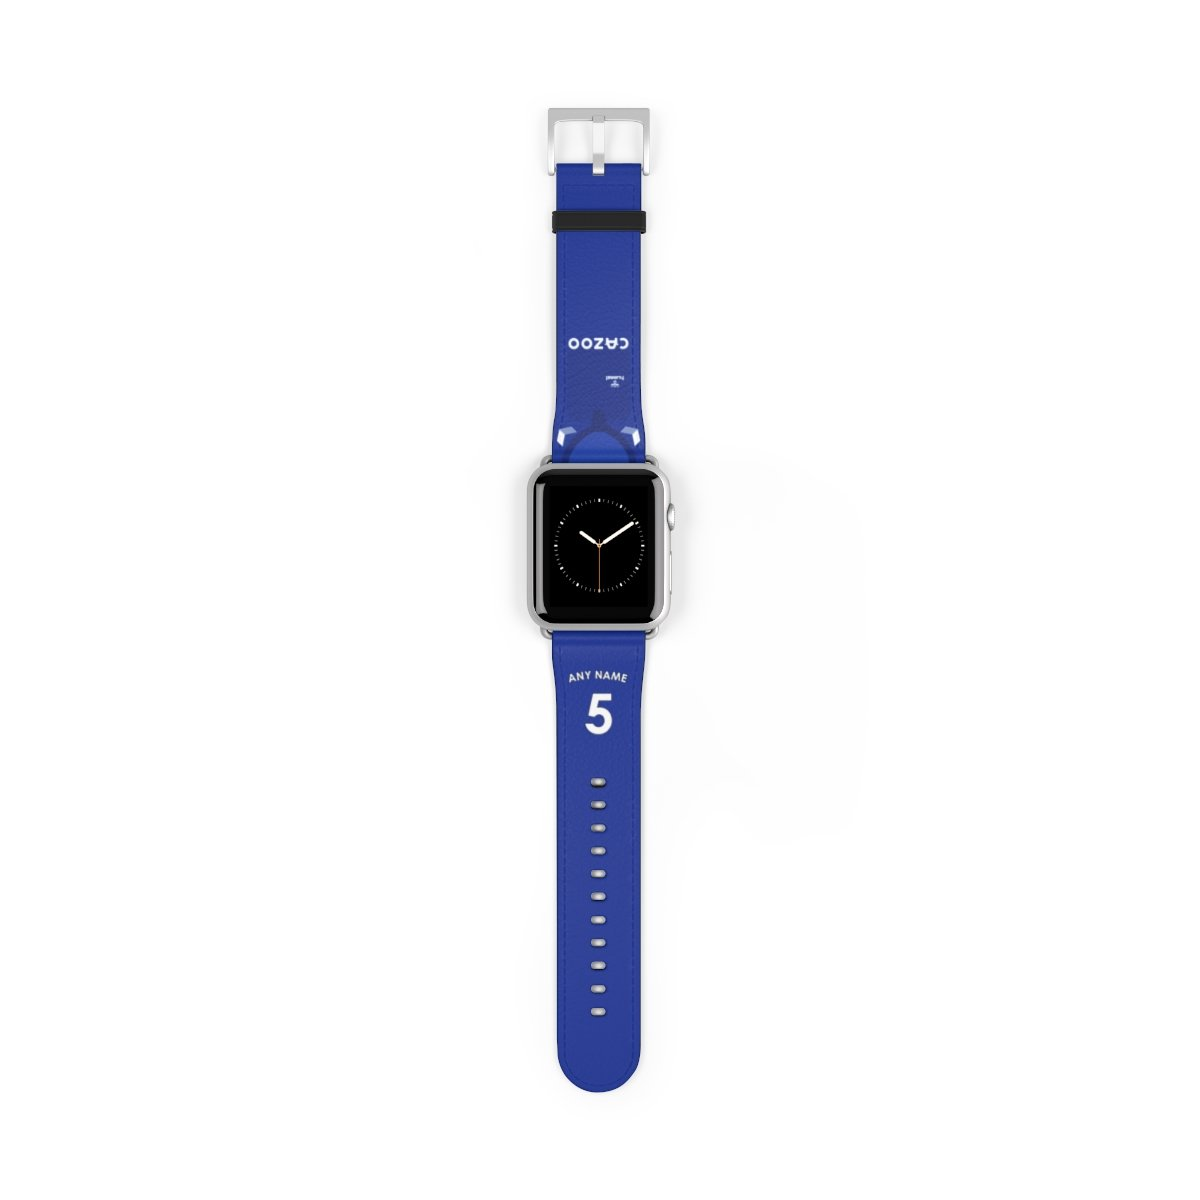 Personalised 2020/2021 Everton Home Kit Style Replacement iWatch Band